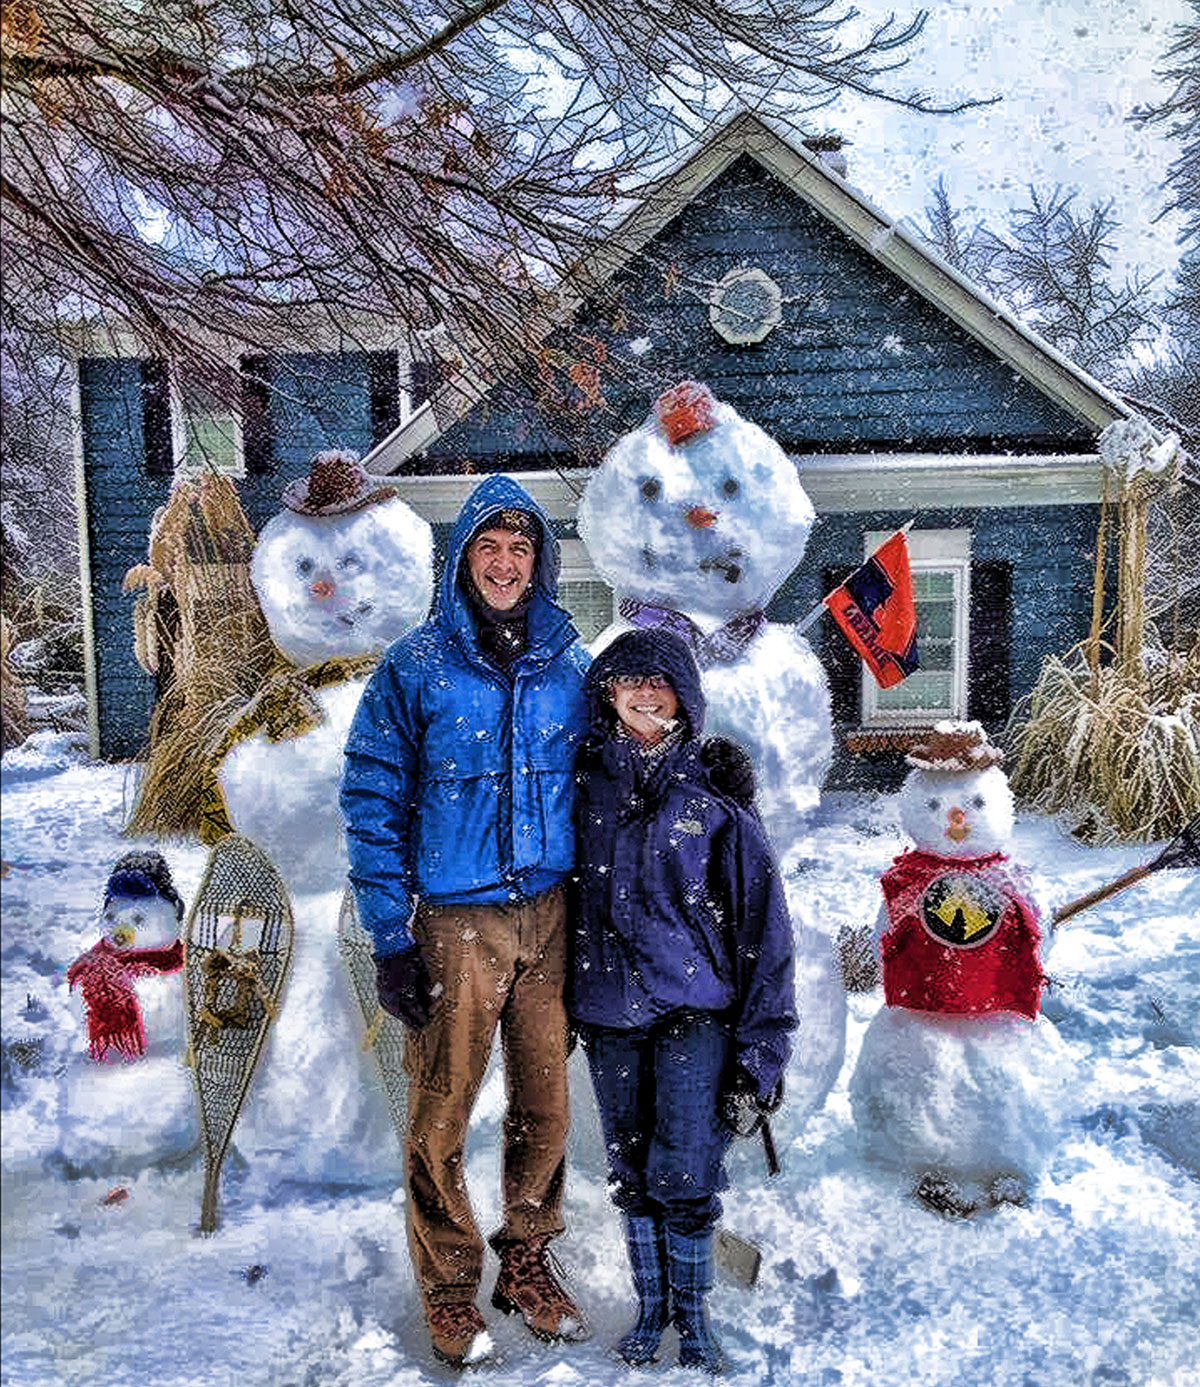 artistic photo - family with snowmen